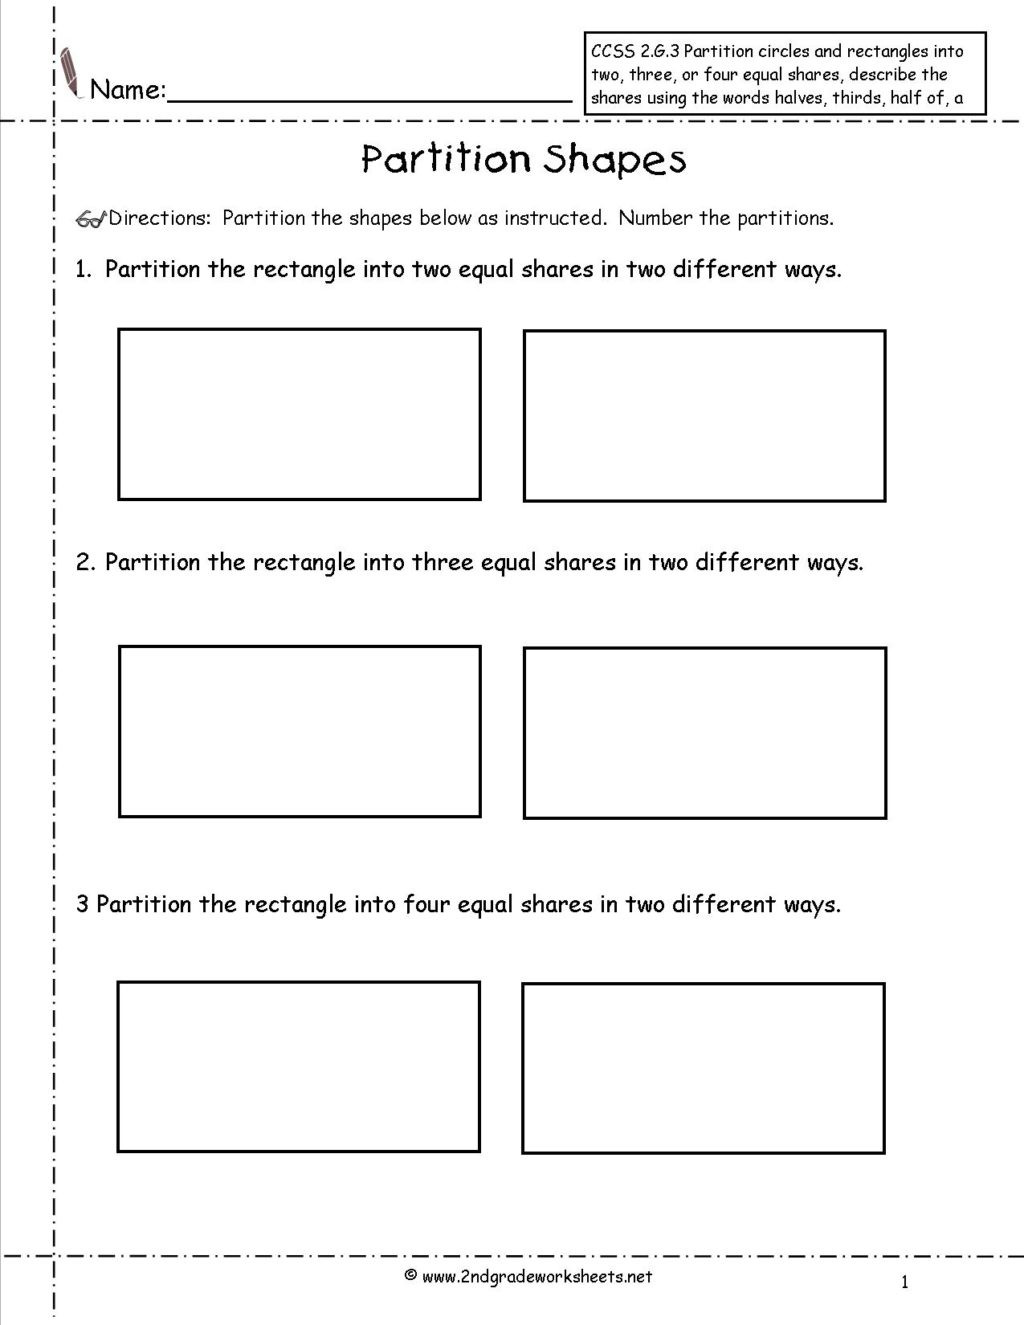 Geometry Worksheet 2nd Grade Worksheet 2nd Grade Geometry Worksheets Ccss G Partition